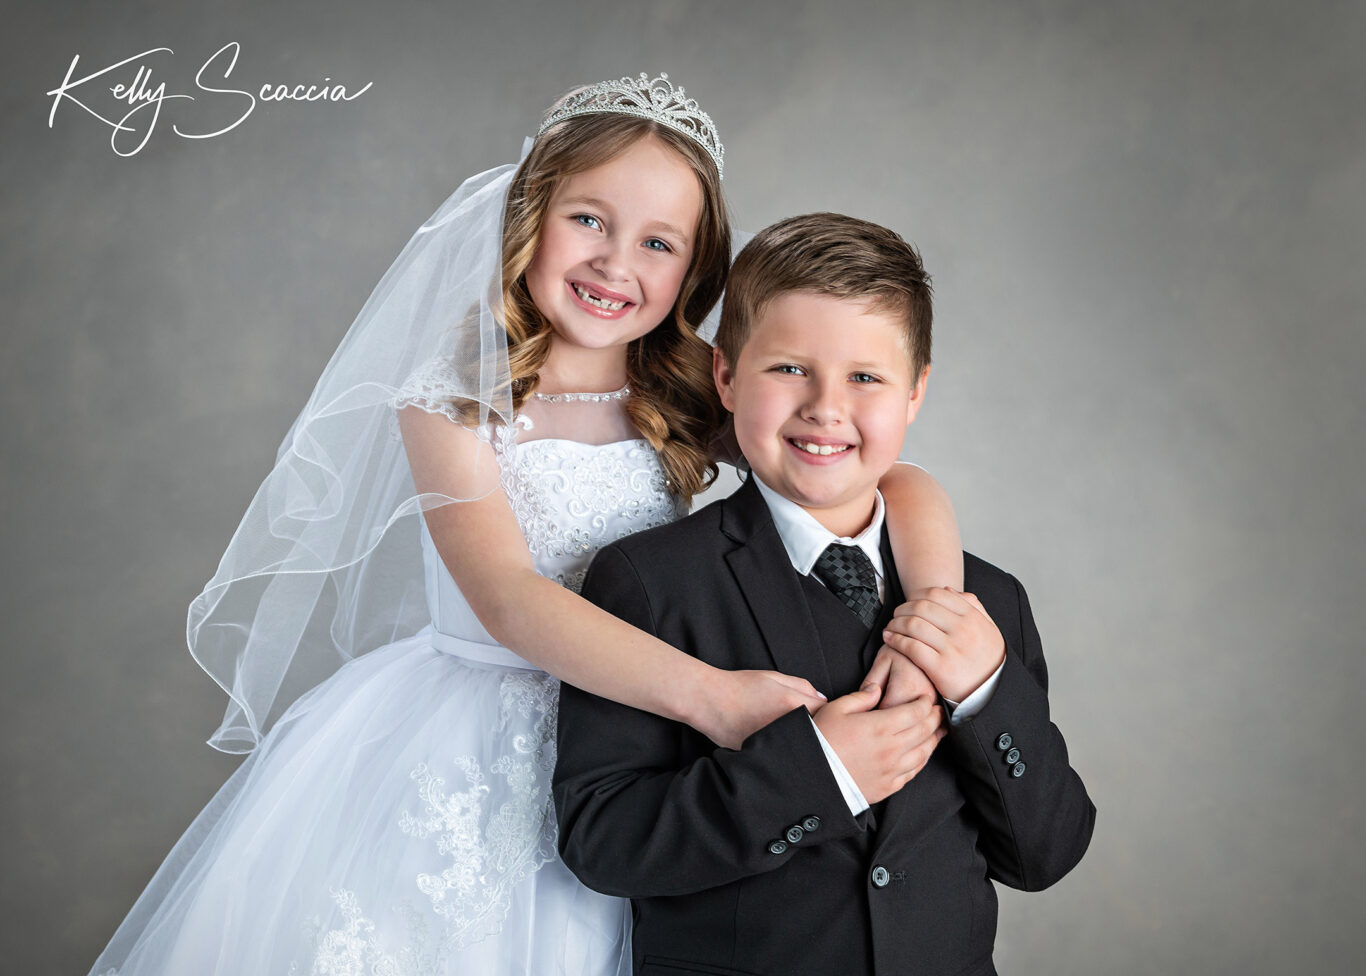 Brother and sister communion portrait wearing traditional white dress and black suit, smiling, looking at you